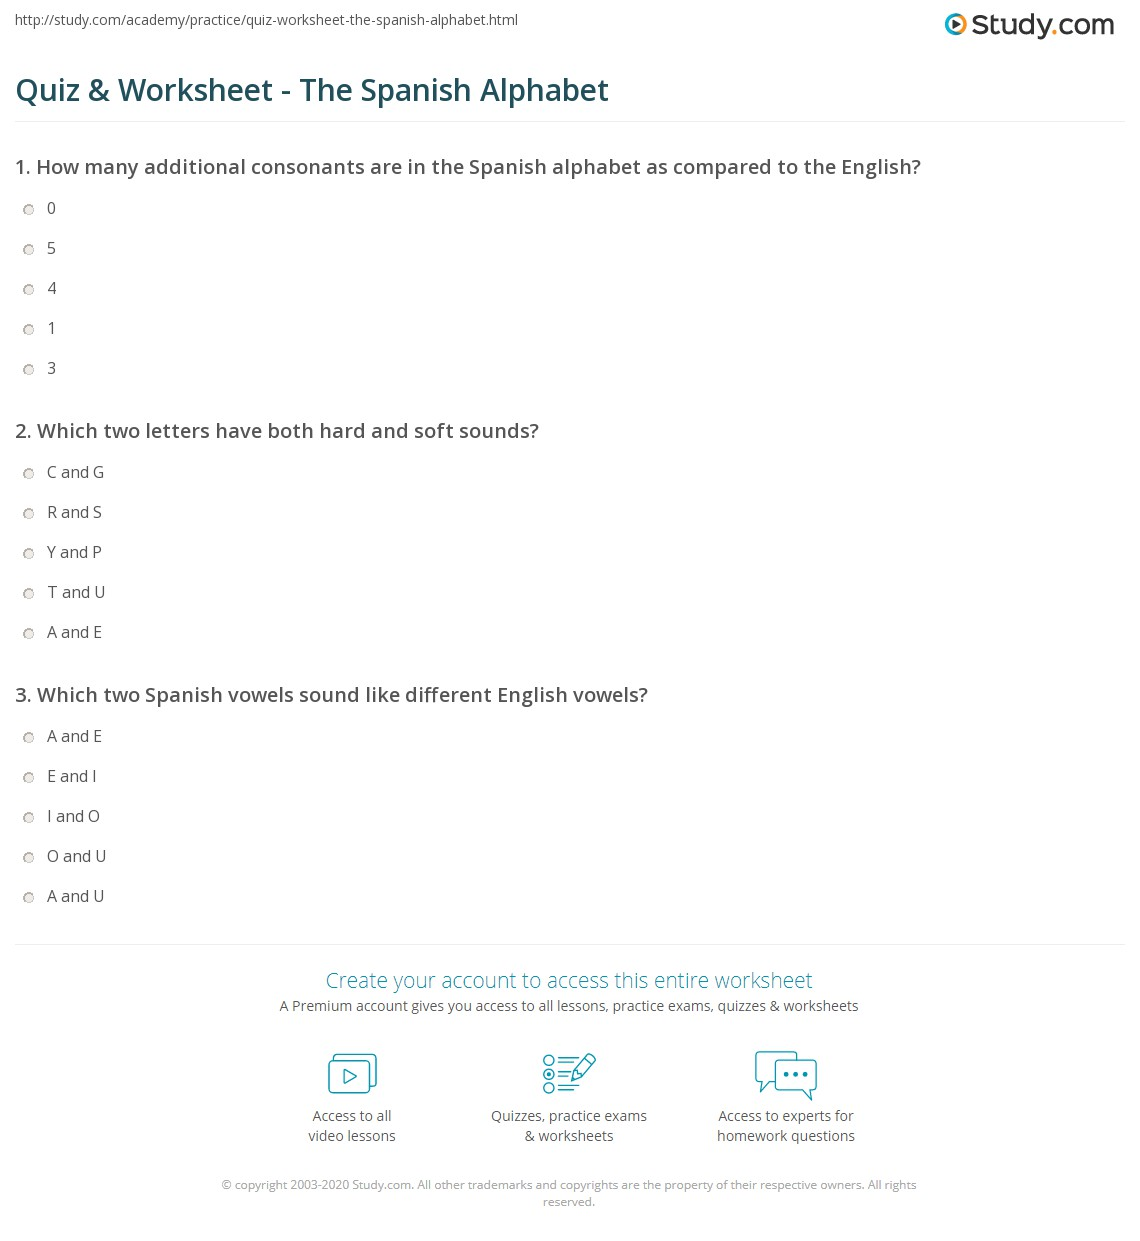 Worksheets Spanish Alphabet Worksheets quiz worksheet the spanish alphabet study com print full pronunciation audio worksheet